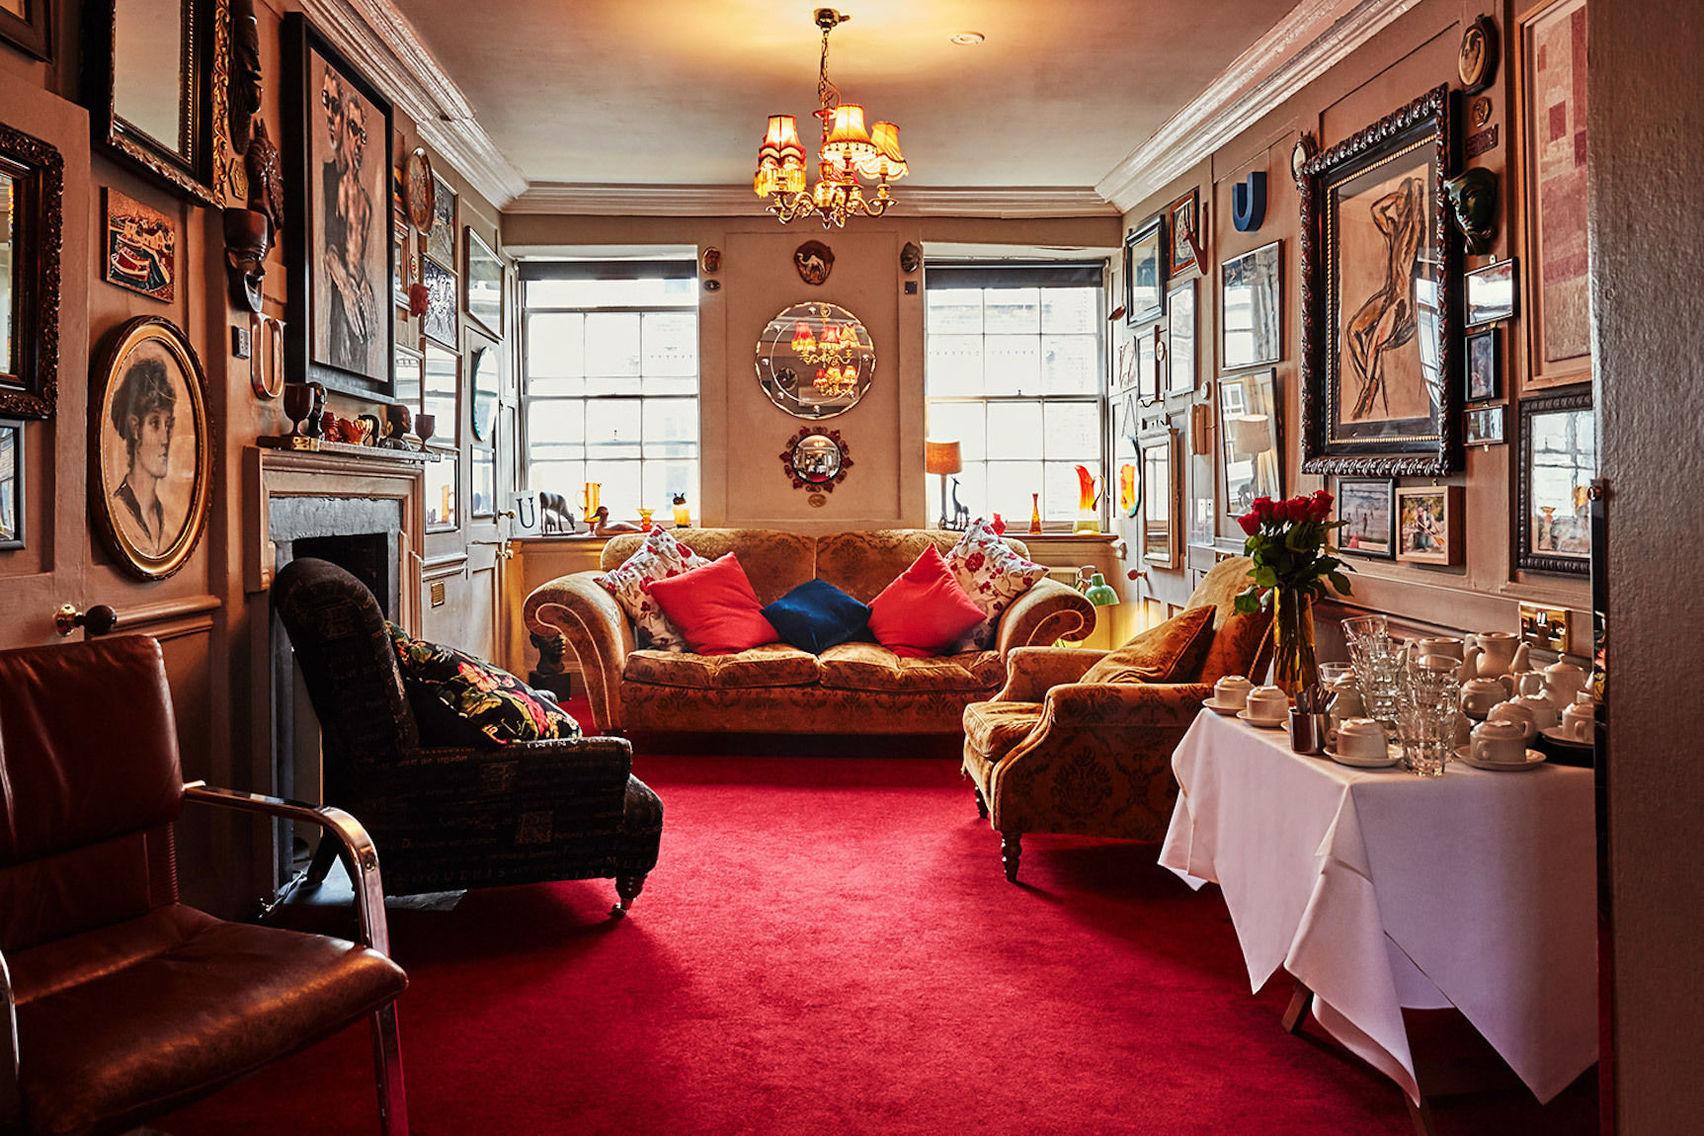 The Channing Williams Room, The Union Club